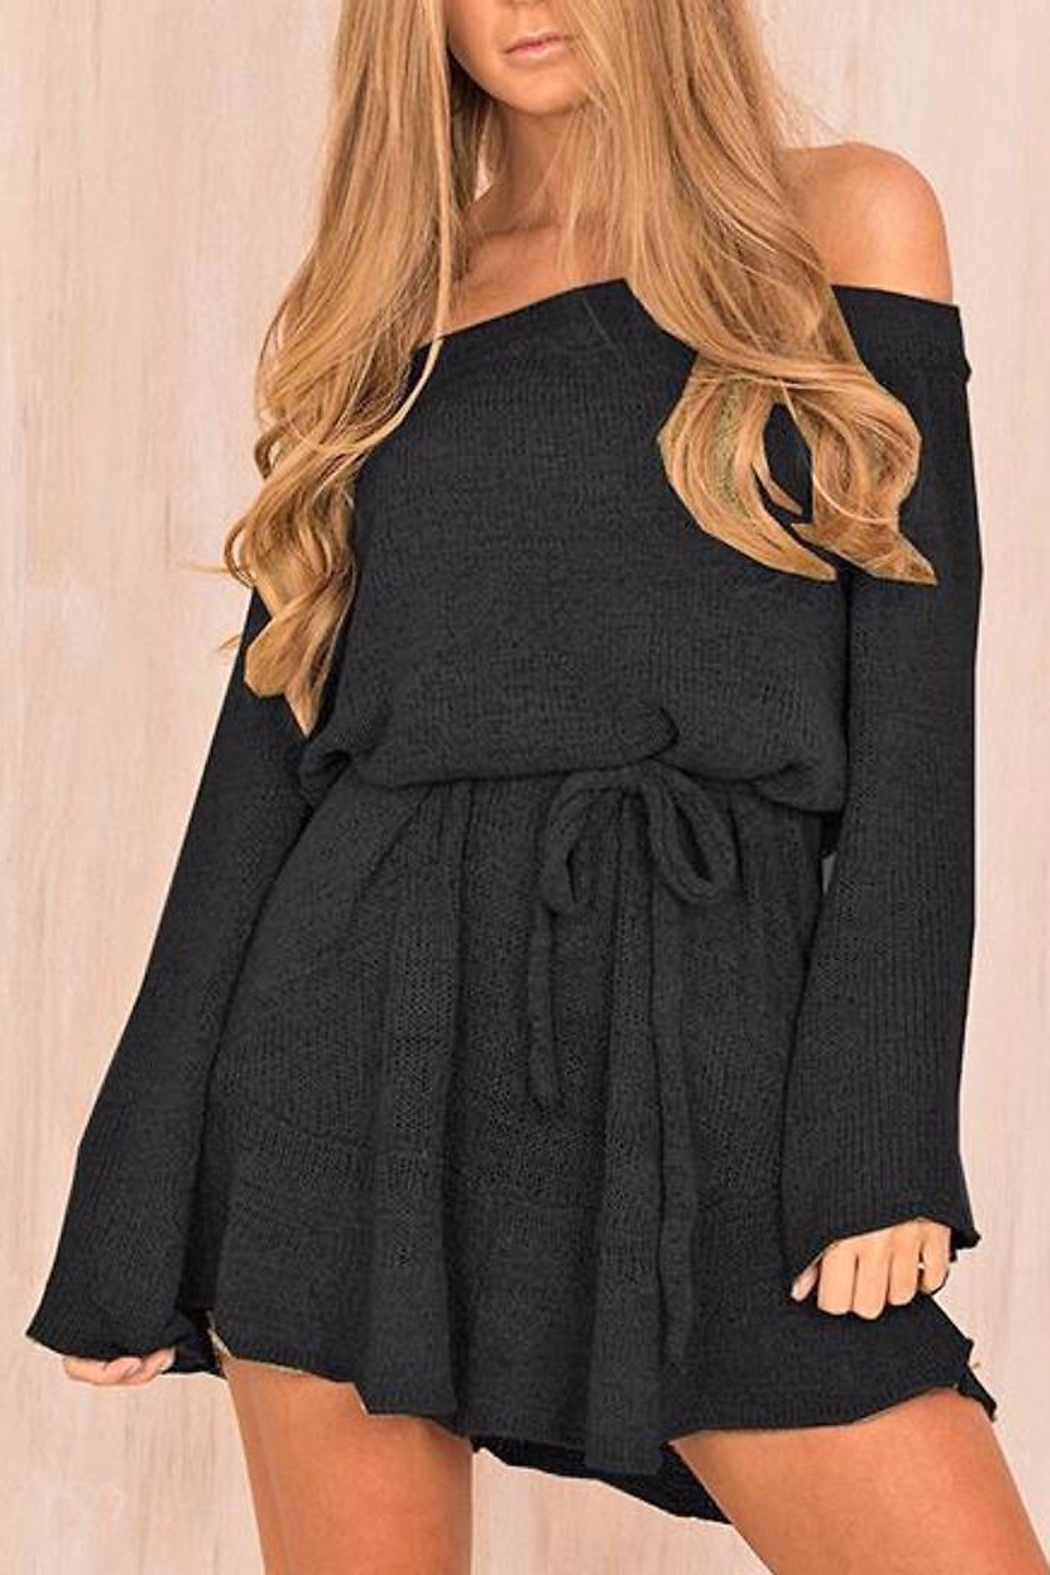 People Outfitter Off-Shoulder Knit Dress - Main Image